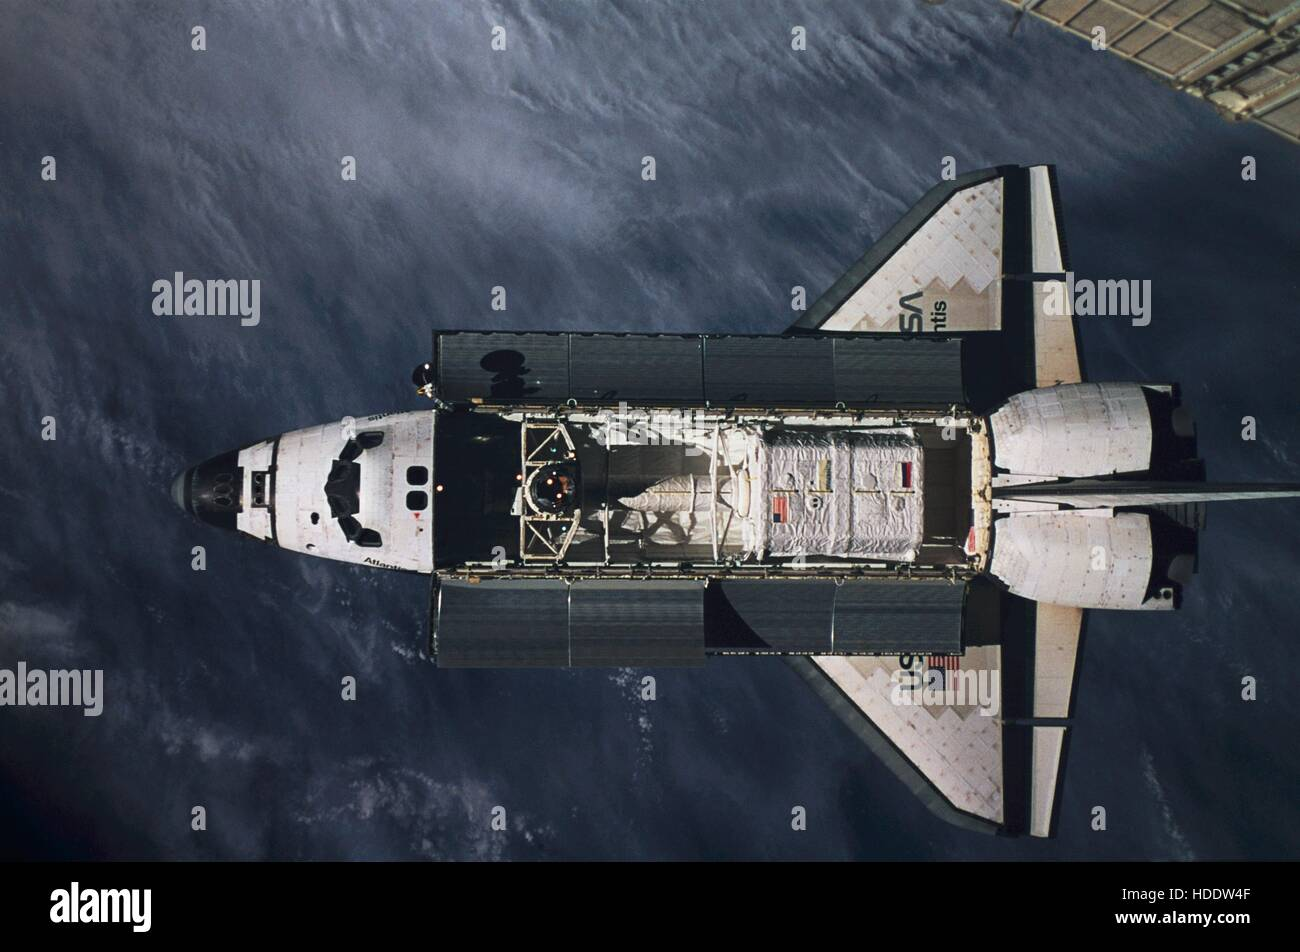 space shuttle atlantis which is orbiter - photo #17